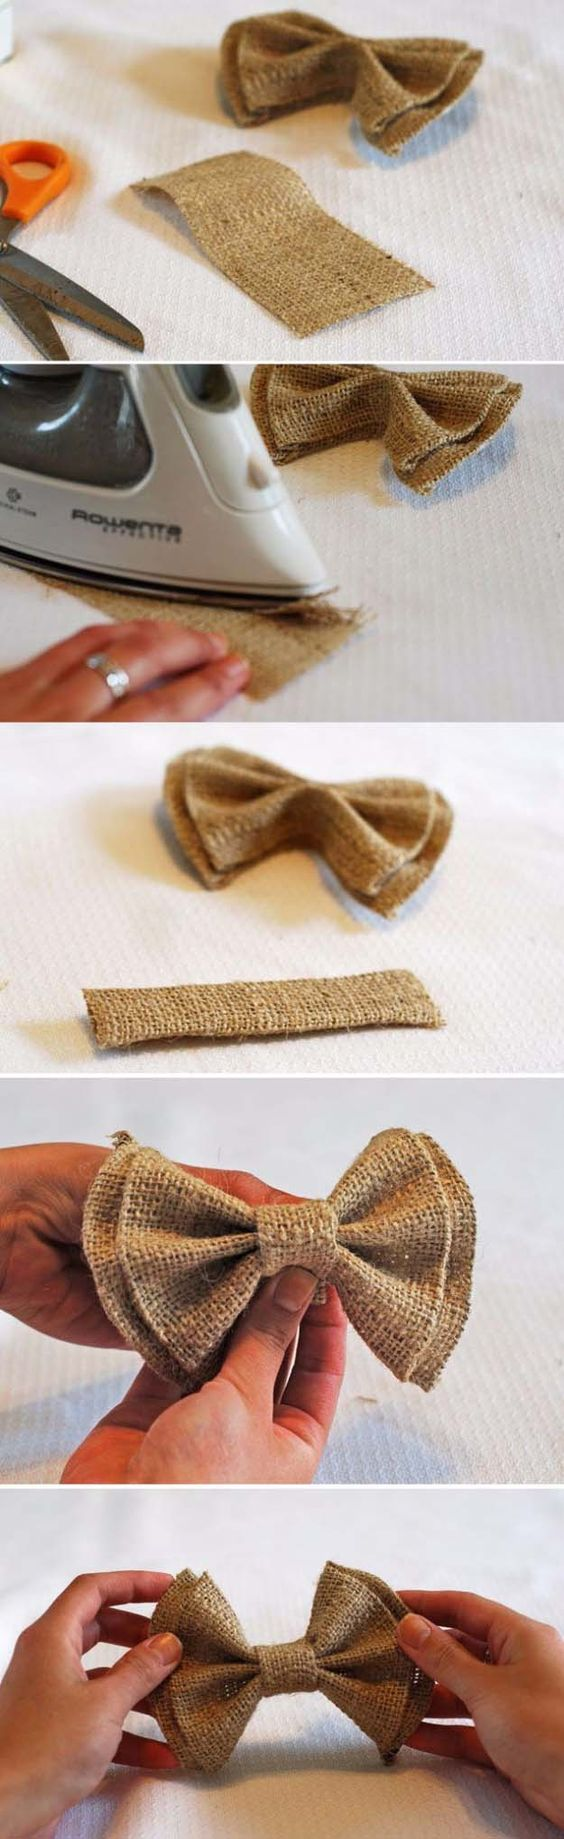 50 creative diy projects made with burlap burlap crafts for Crafts made with burlap